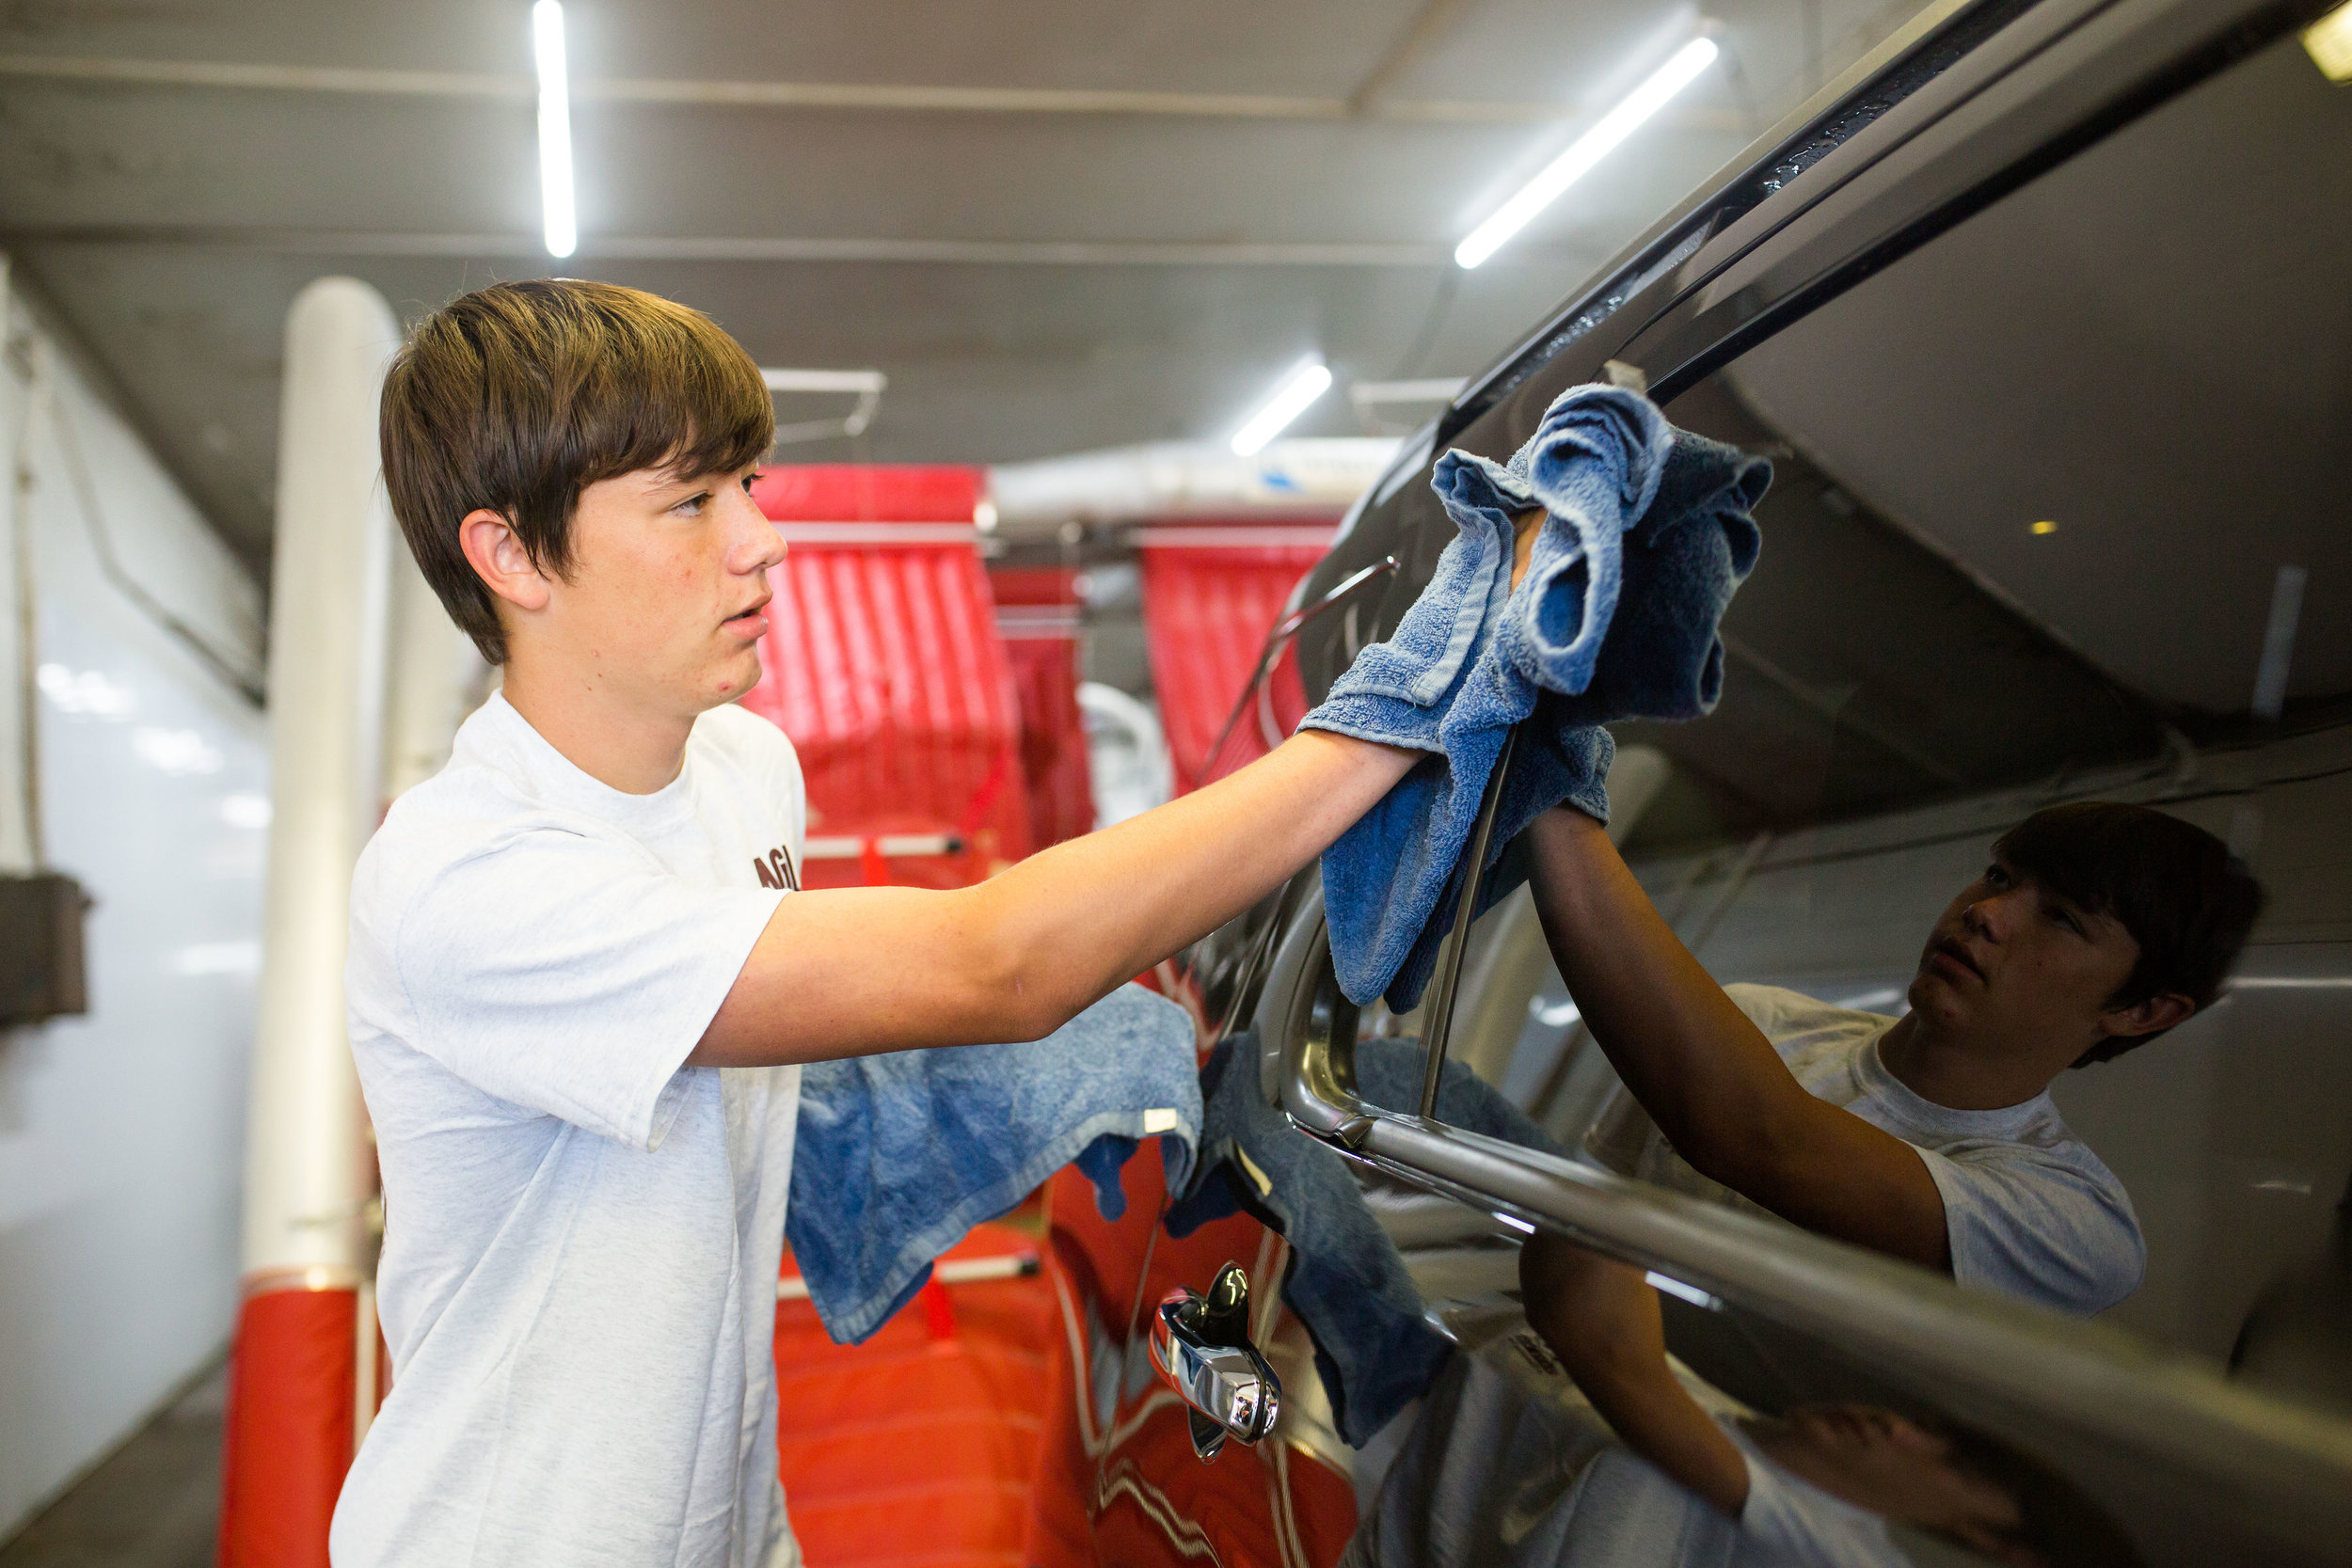 Quinton Zwiesler, a 16-year-old student and employee at Eagle Auto Wash, is scheduled for just two hours on school days to allow time for chores and homework in the evenings.